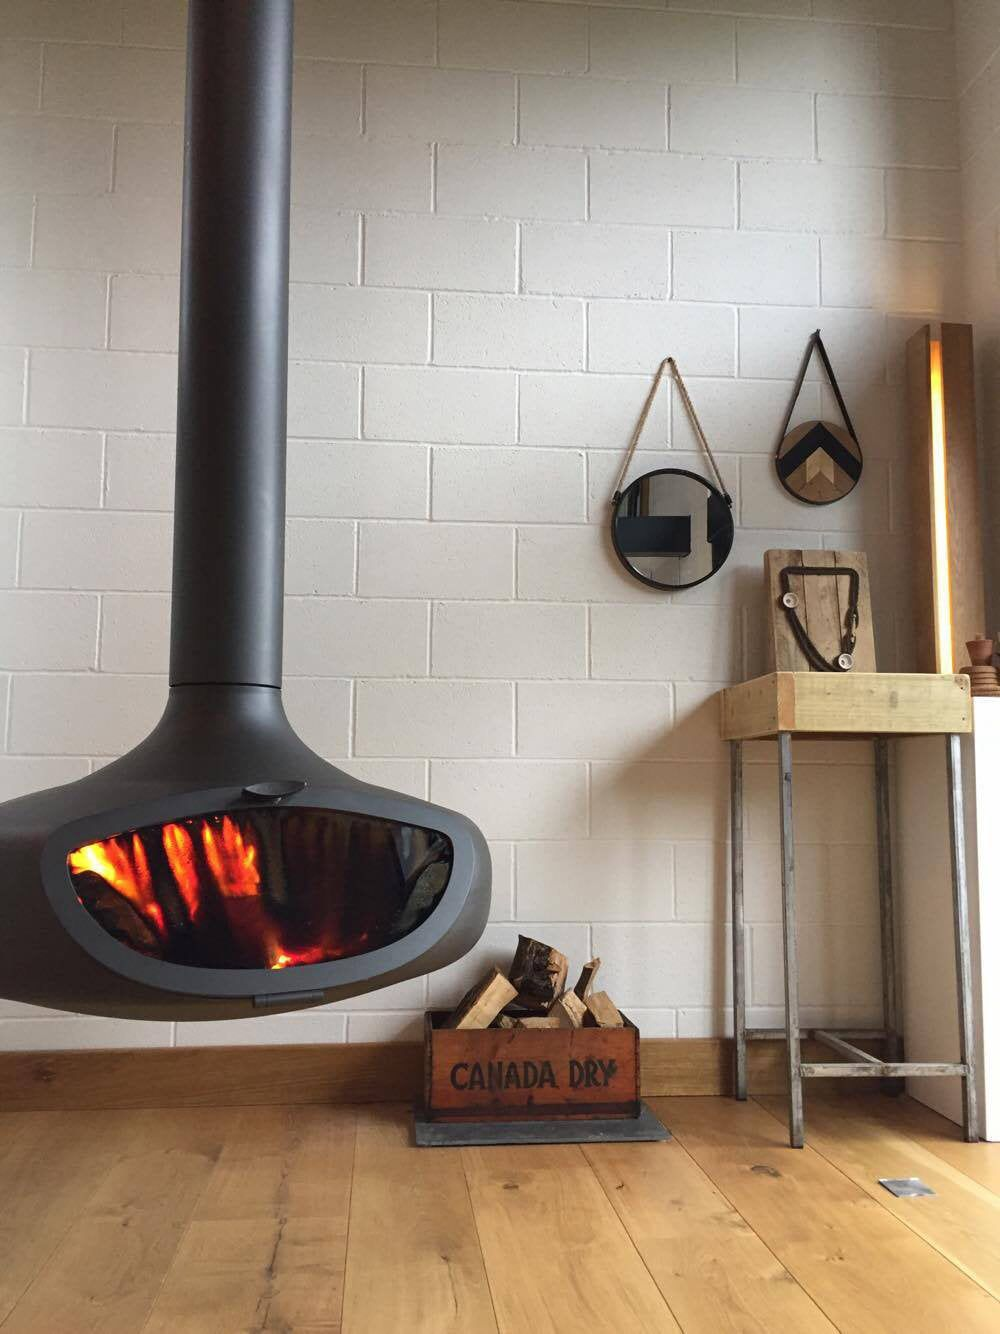 Firebob Suspended Stove In 2020 Wood Burner Hanging Fireplace